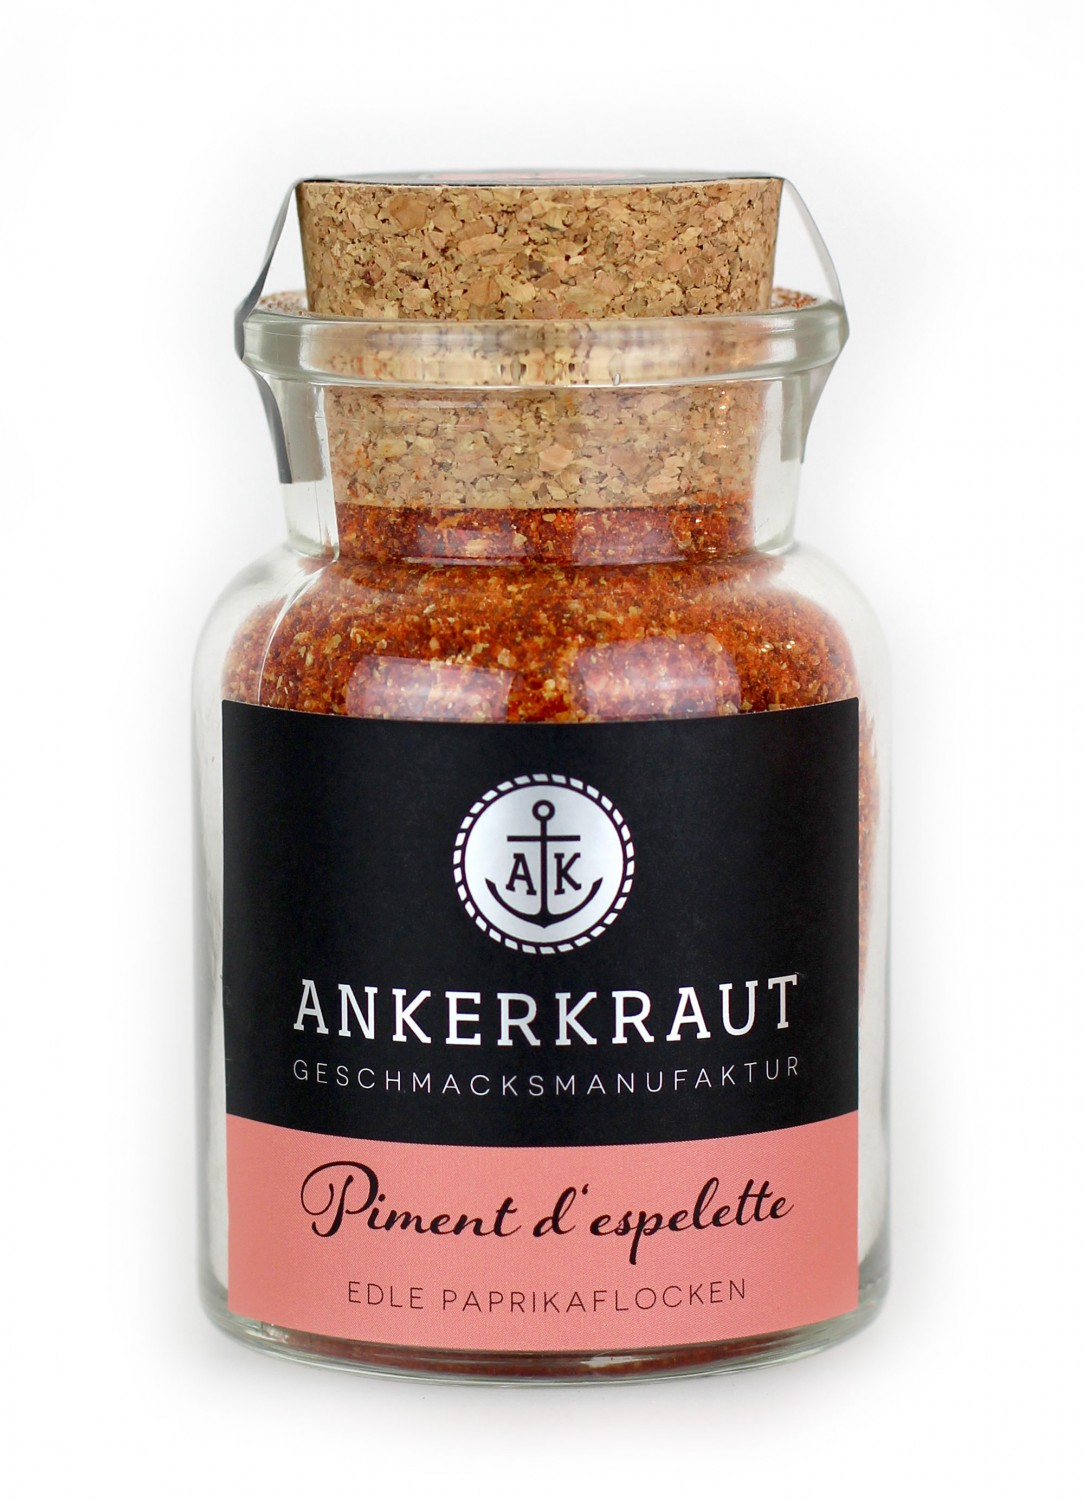 ankerkraut piment d 39 espelette edel chili 80 g glas. Black Bedroom Furniture Sets. Home Design Ideas